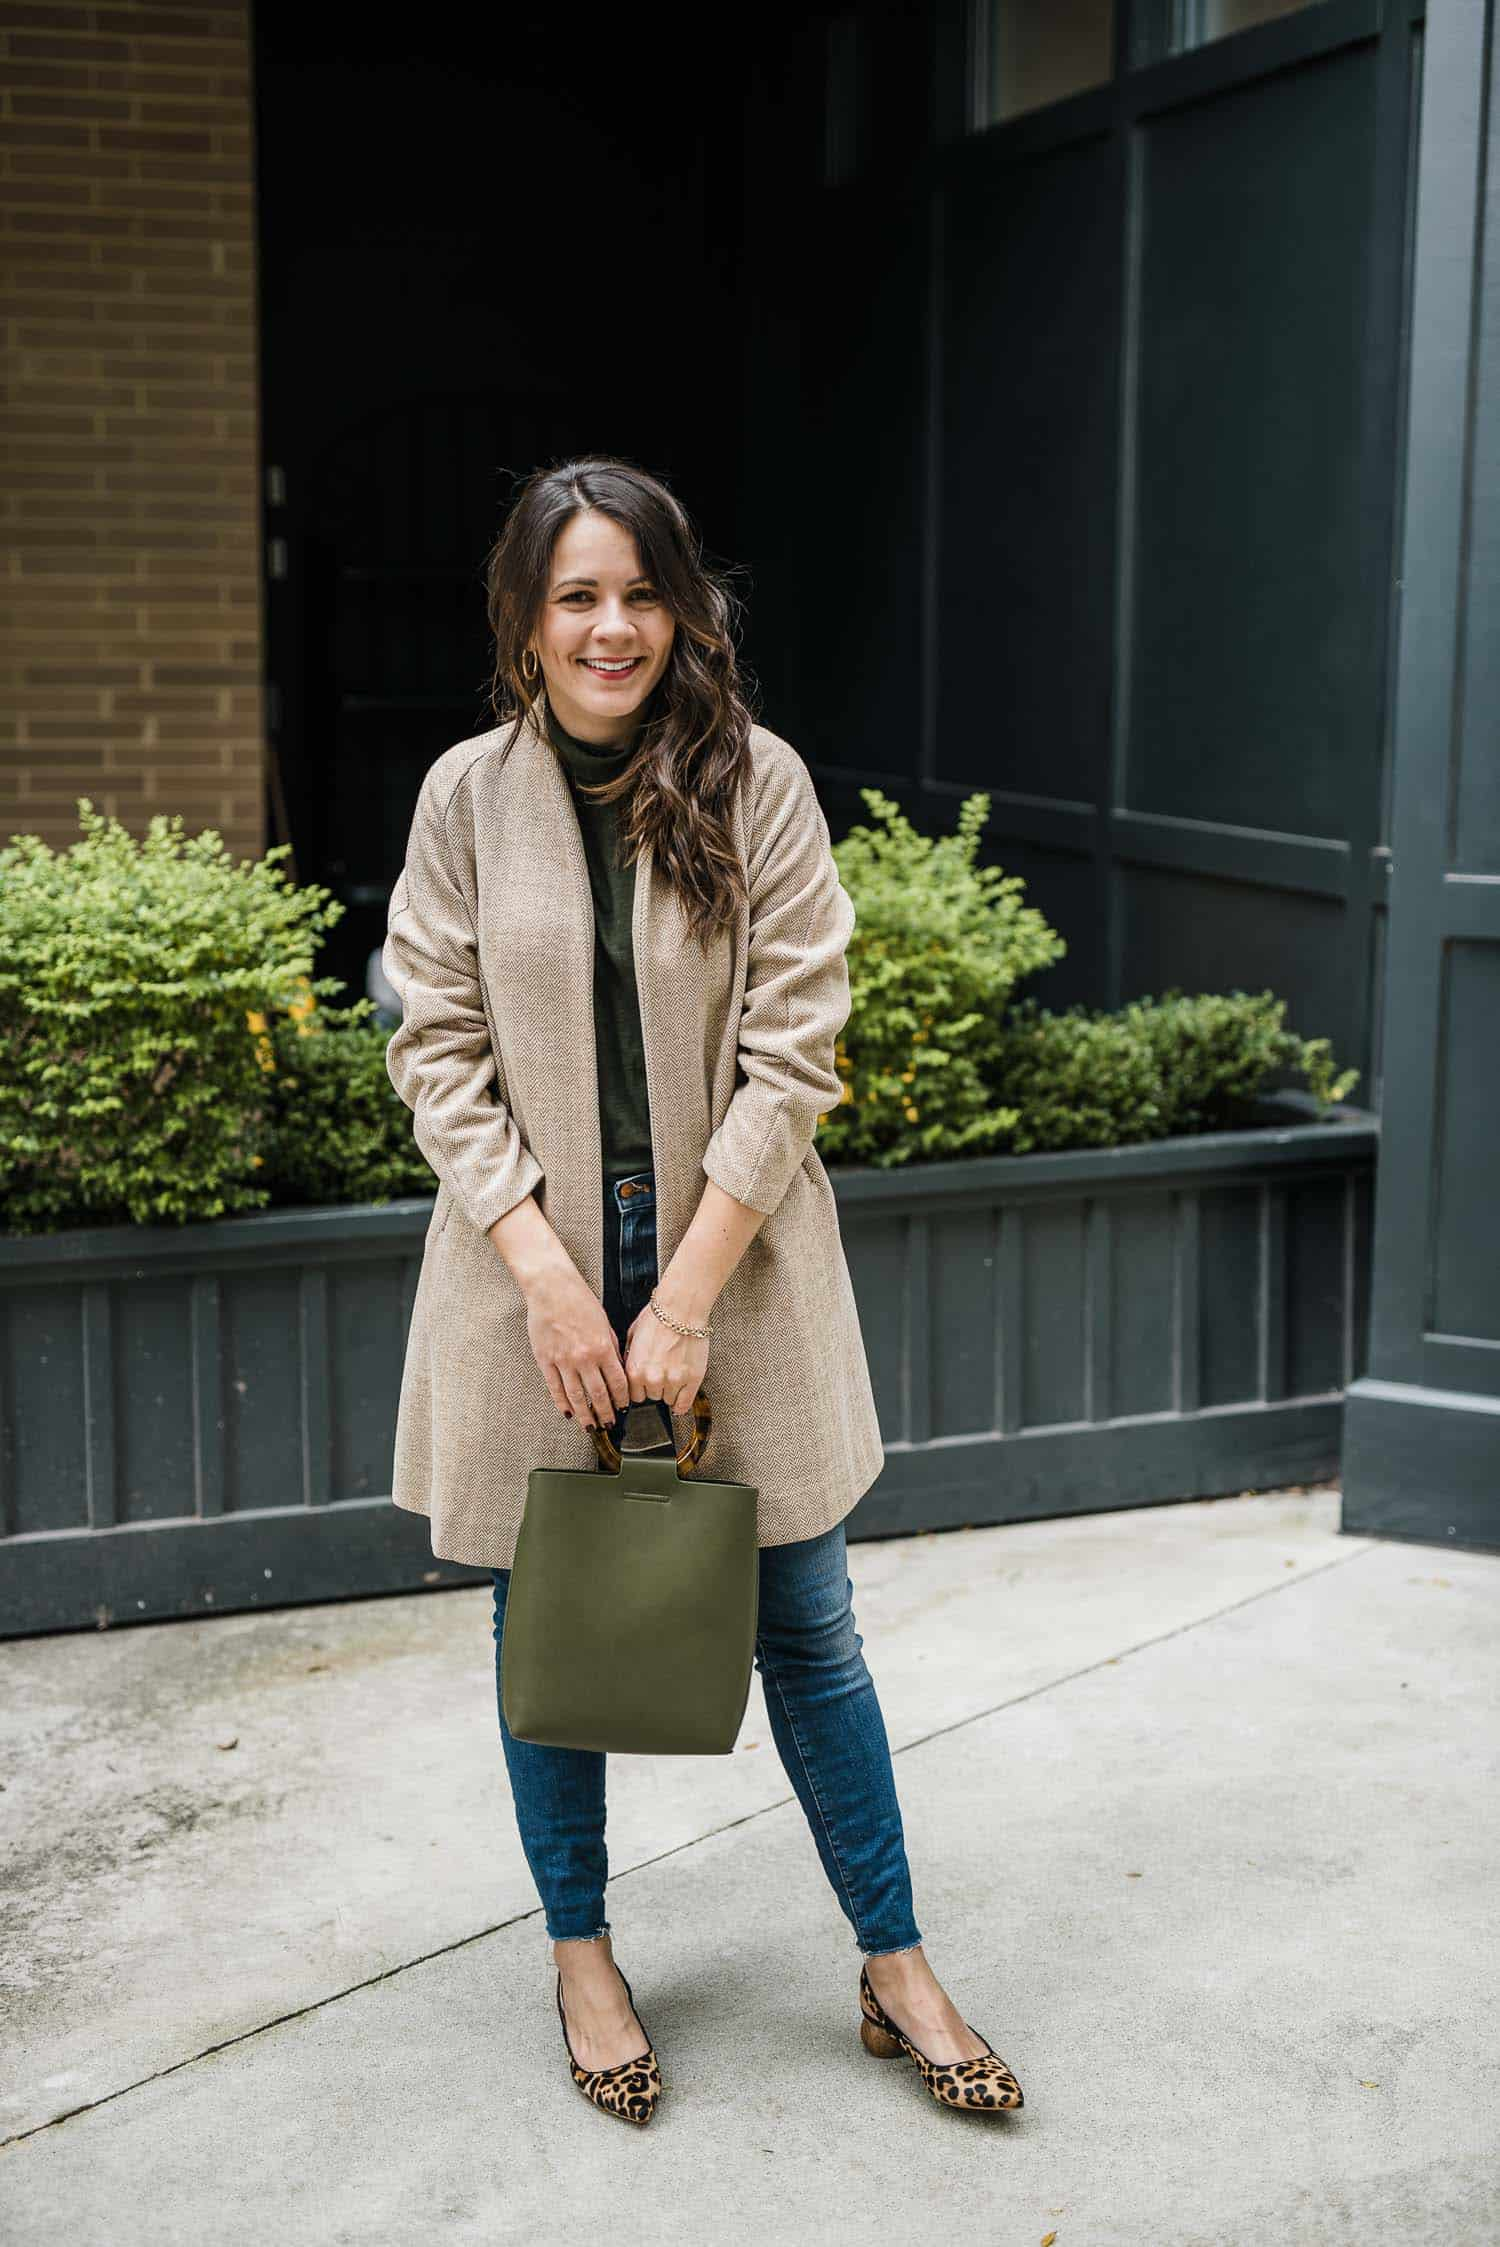 5 Hunter Green Bags To Love Under $100